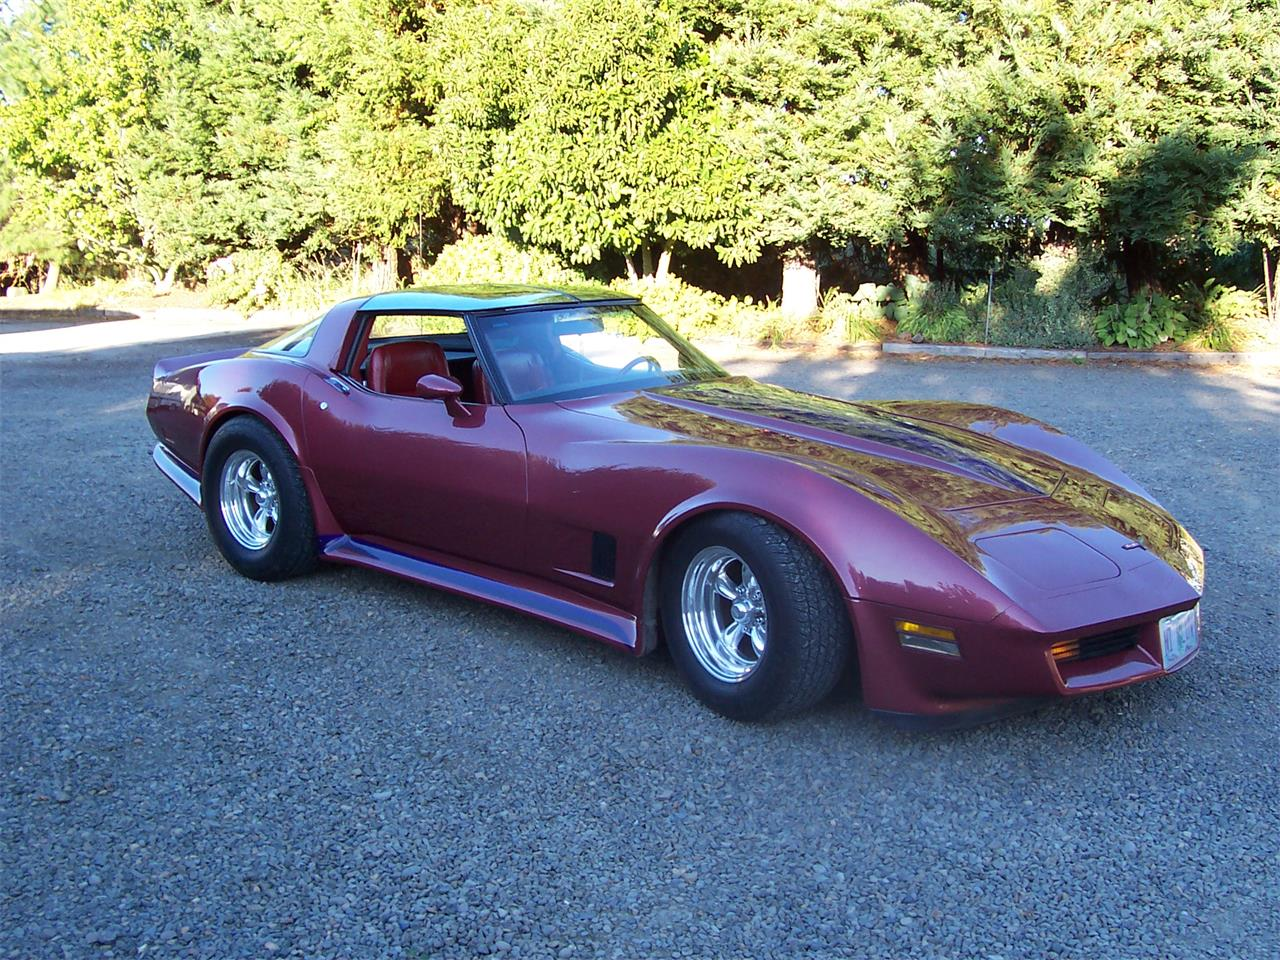 Large Picture of '81 Corvette - $18,950.00 Offered by a Private Seller - MYXB